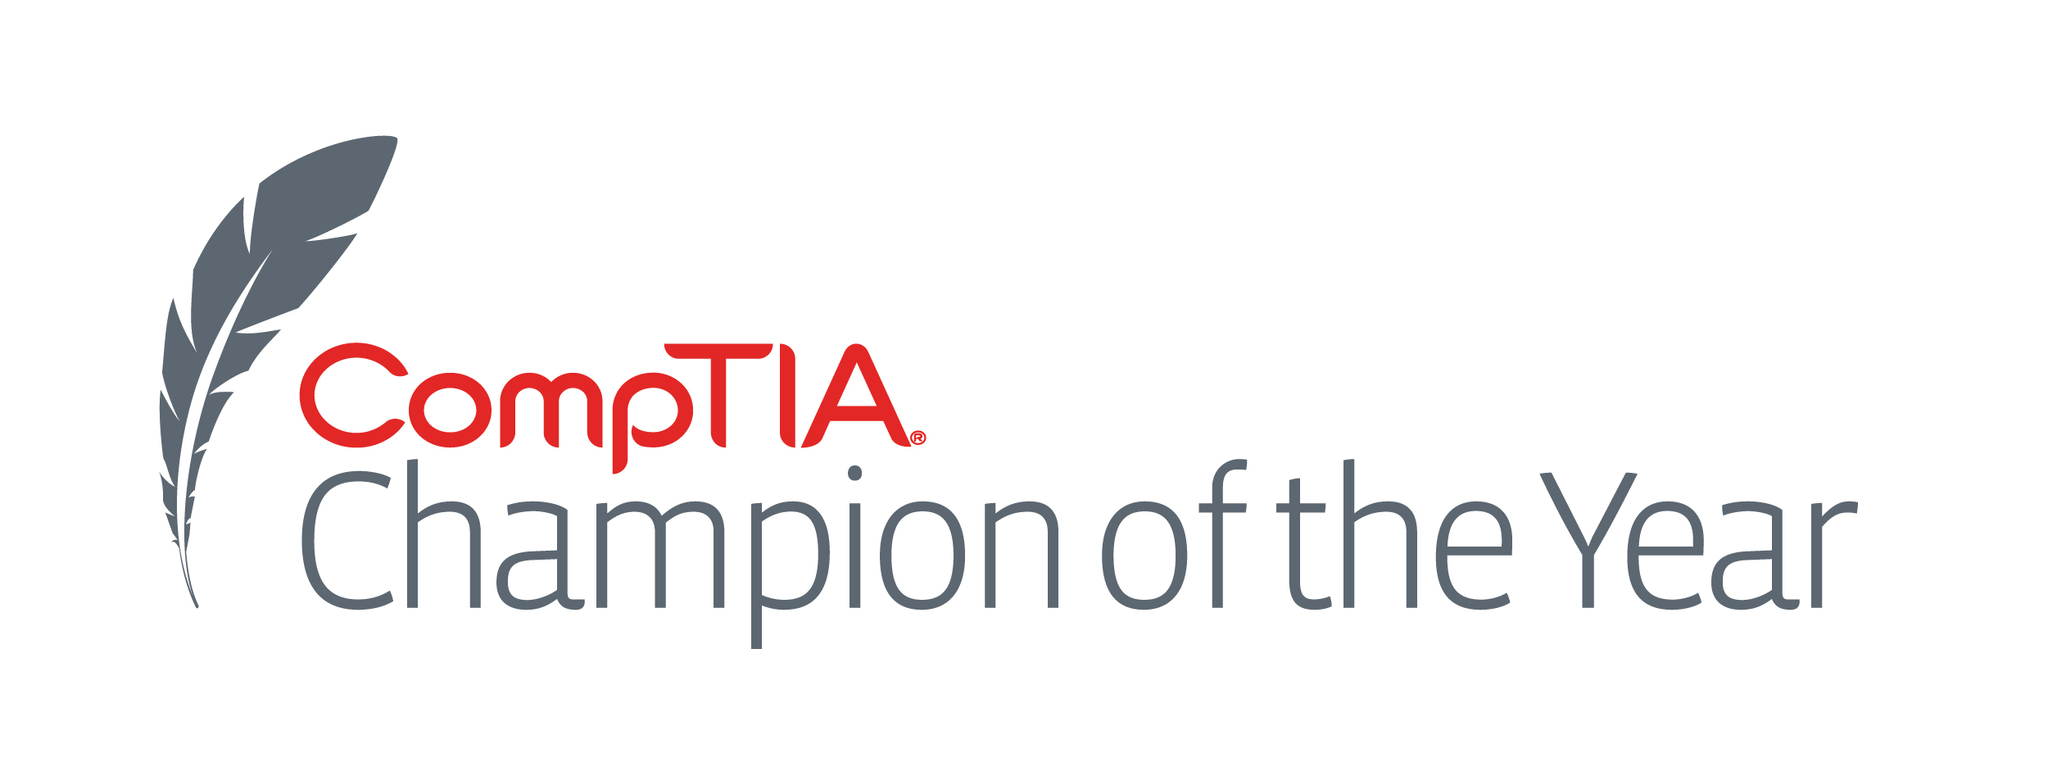 Chamption of the year logo 2